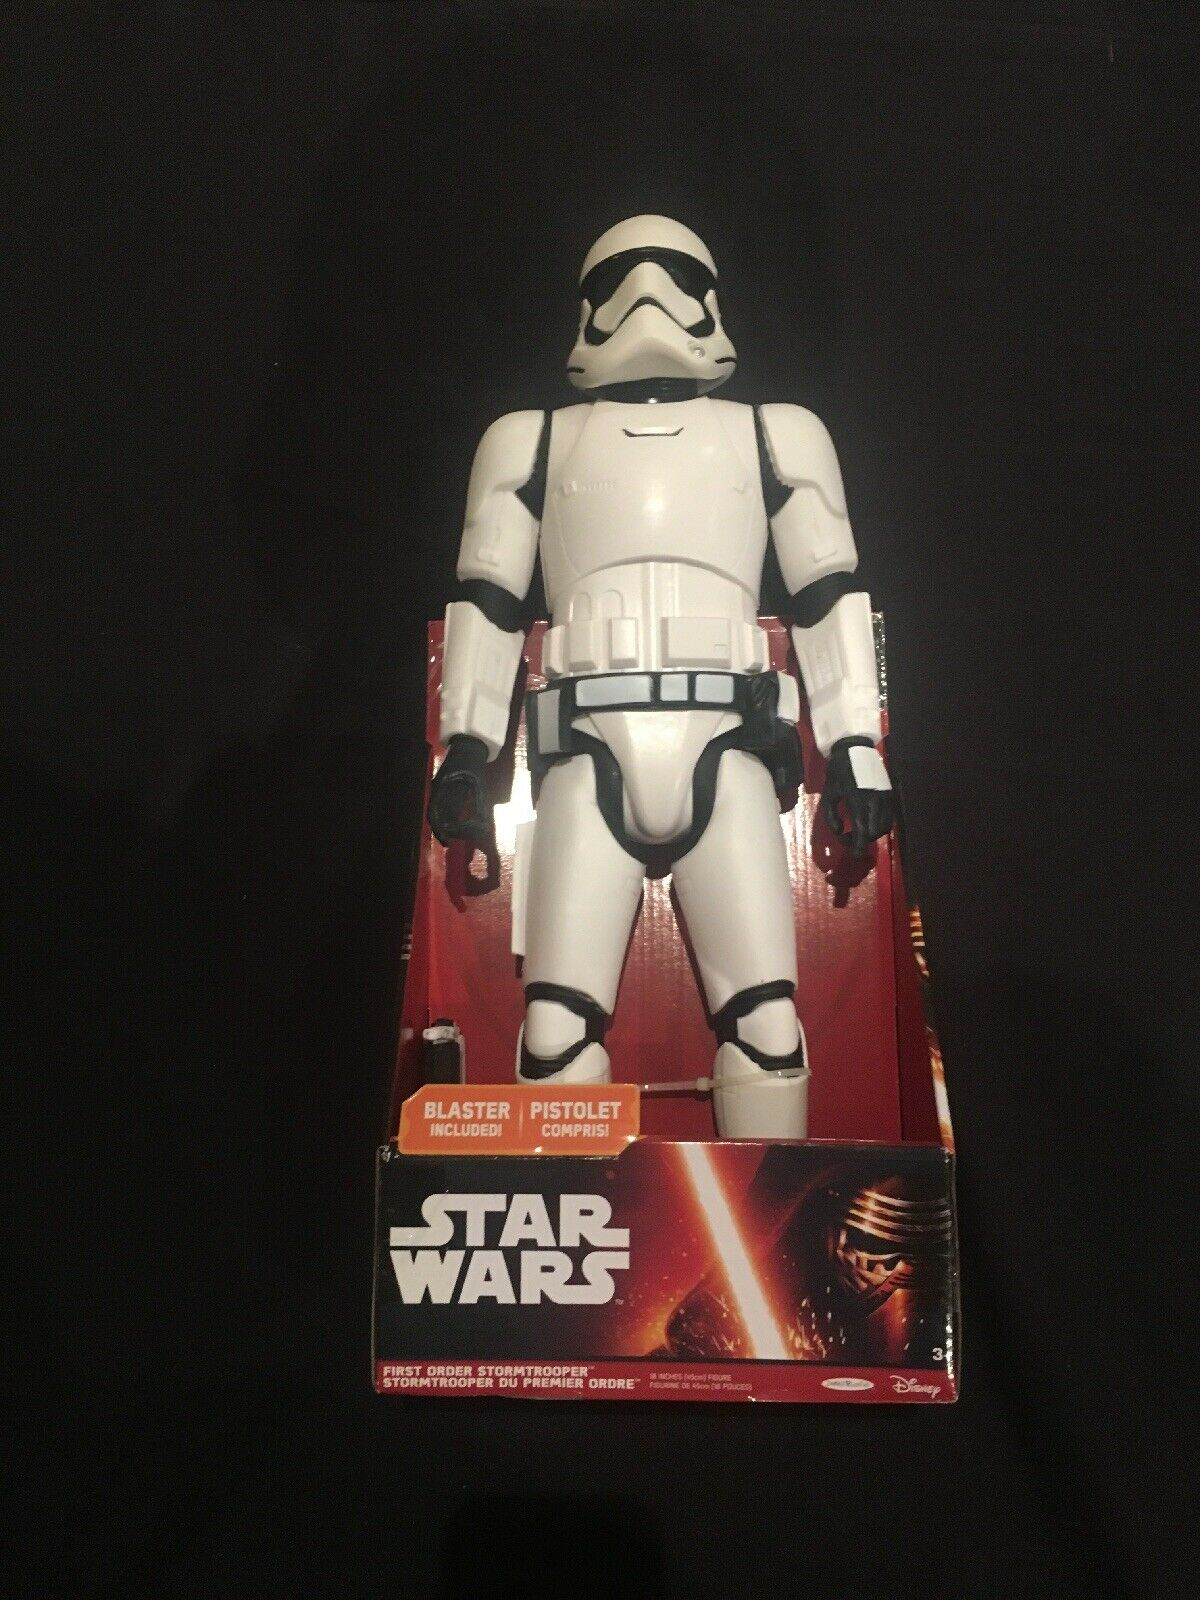 estrella guerras Jakks gree Figs  Imperial StormTrooper with Blaster  Articulated 19""